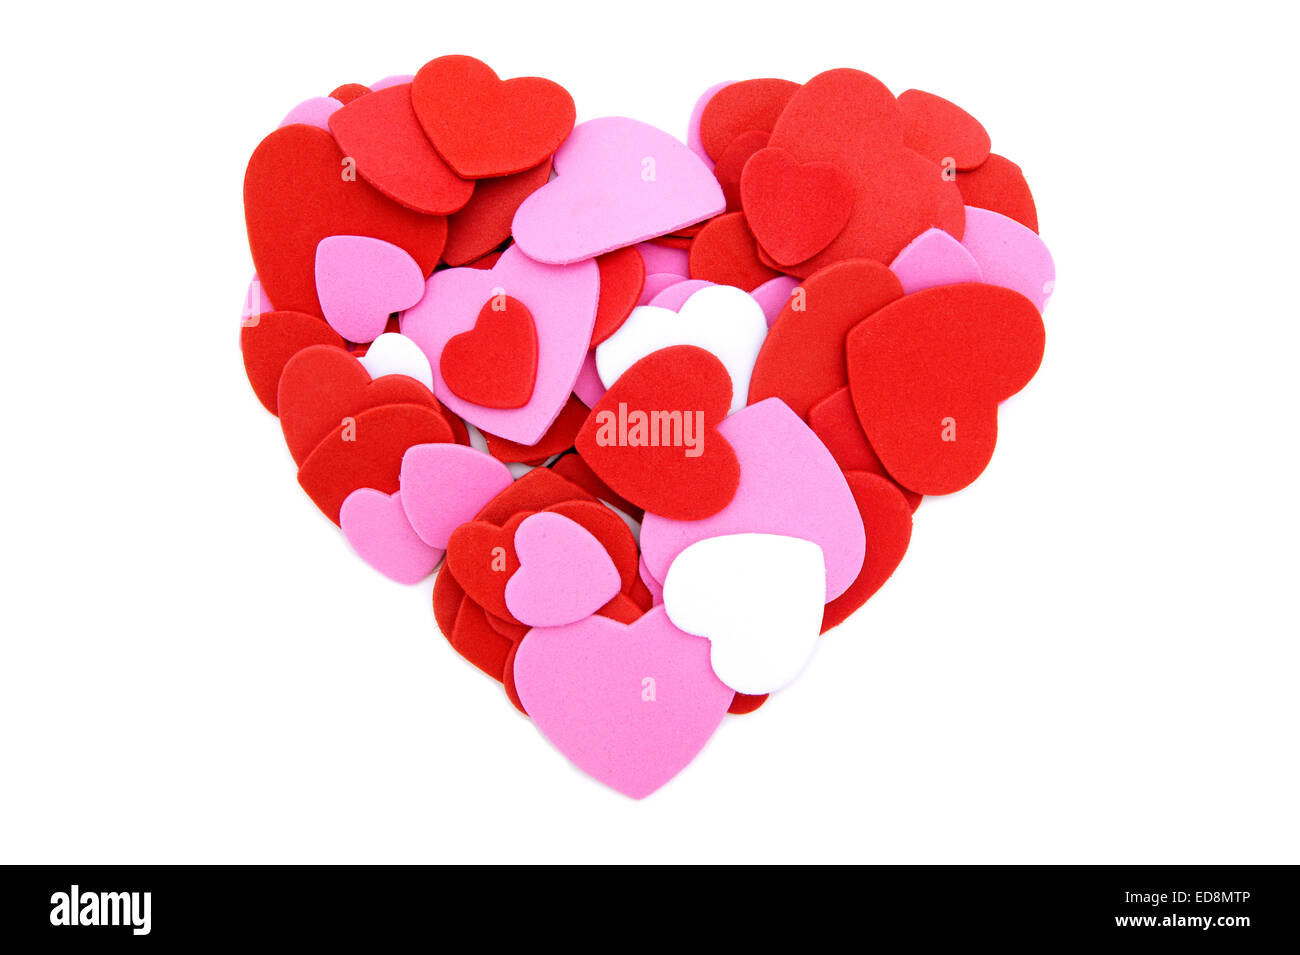 Colorful heart made of Valentines Day heart shaped confetti - Stock Image